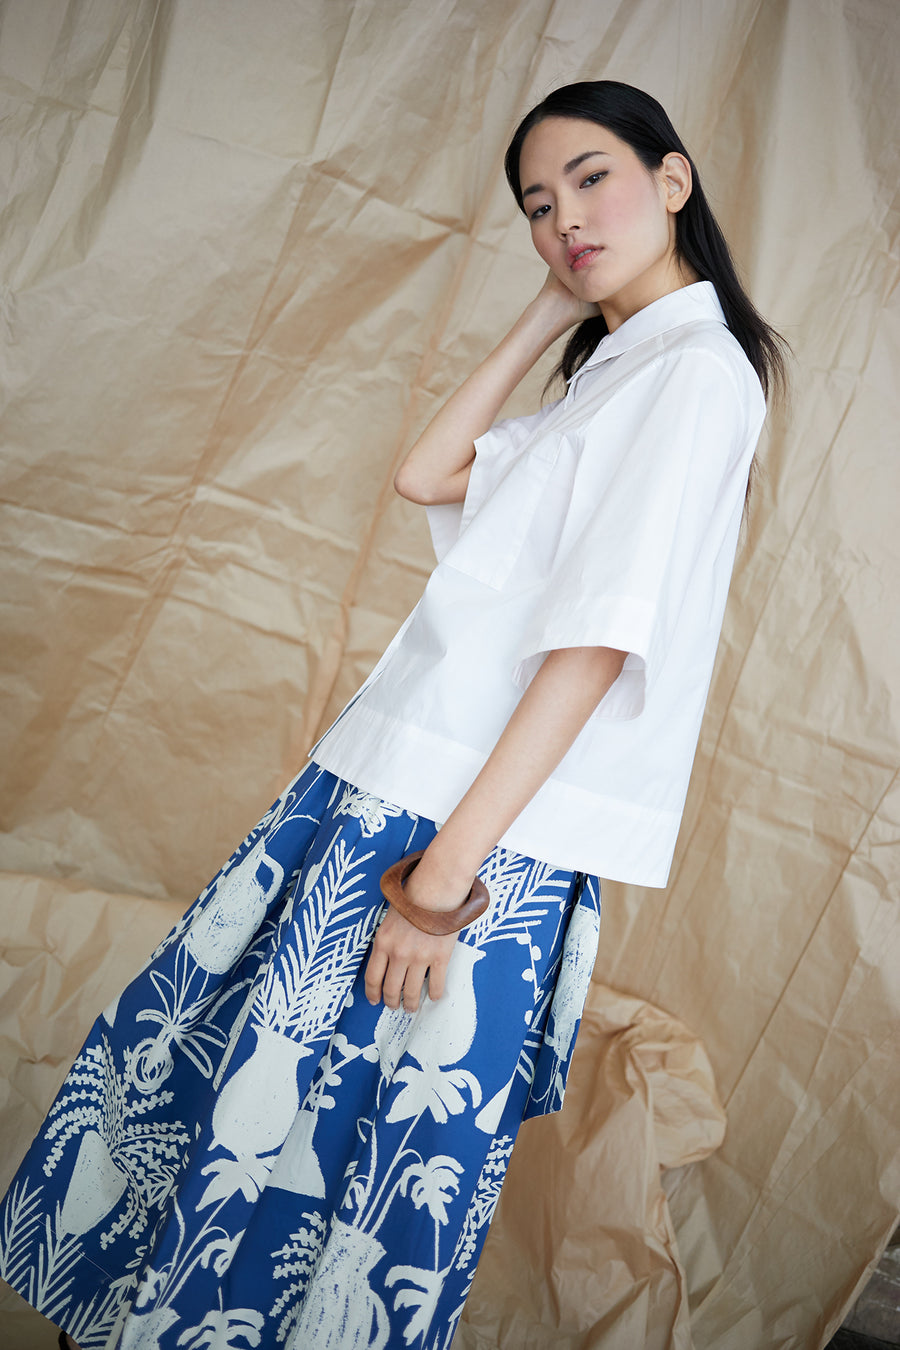 Kimani Skirt in Potted Plant Print Blue/White